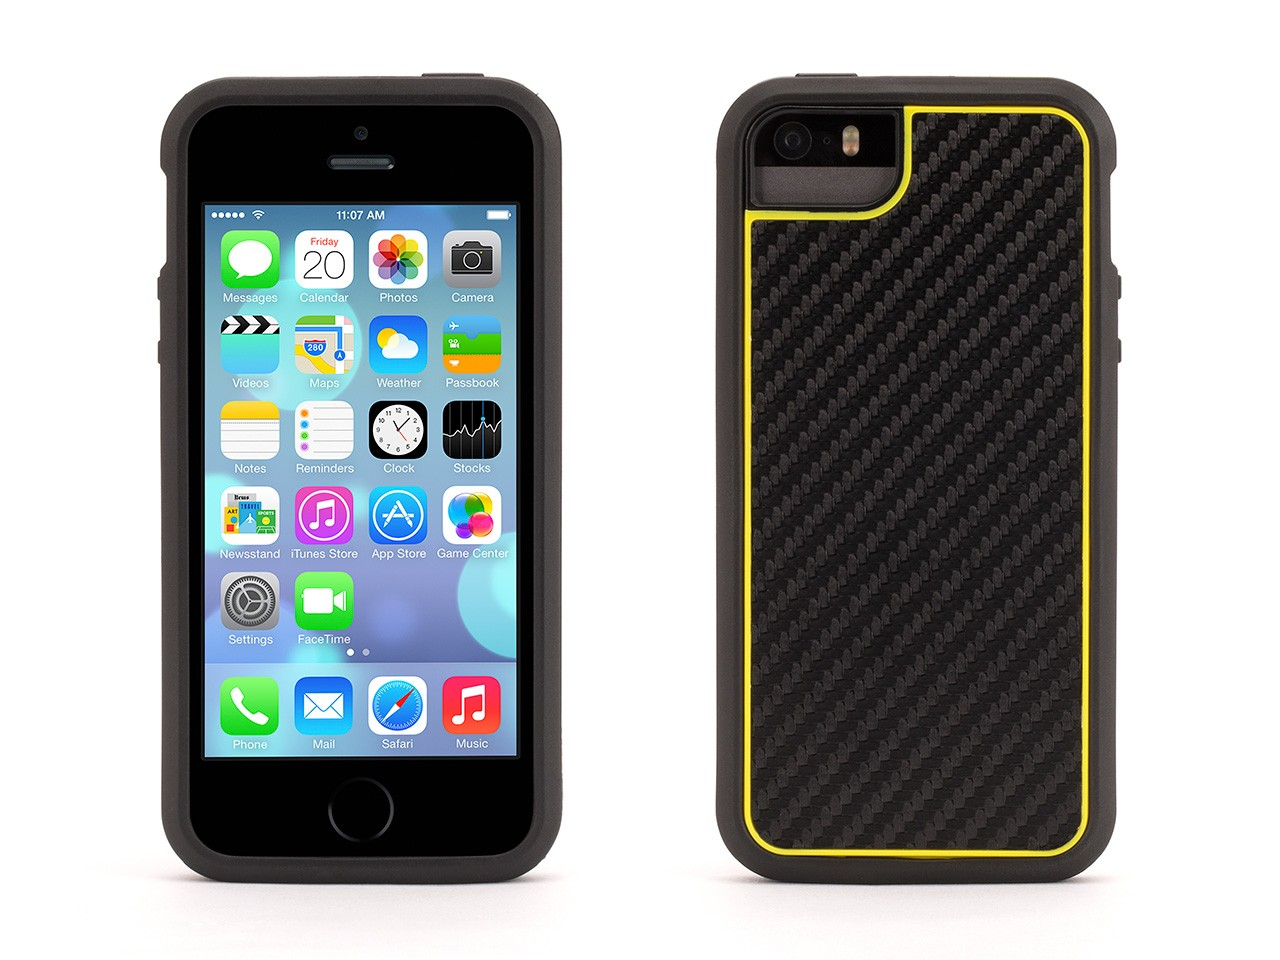 graphite yellow identity 2 piece protective case for iphone 5 5s iphone se ebay. Black Bedroom Furniture Sets. Home Design Ideas